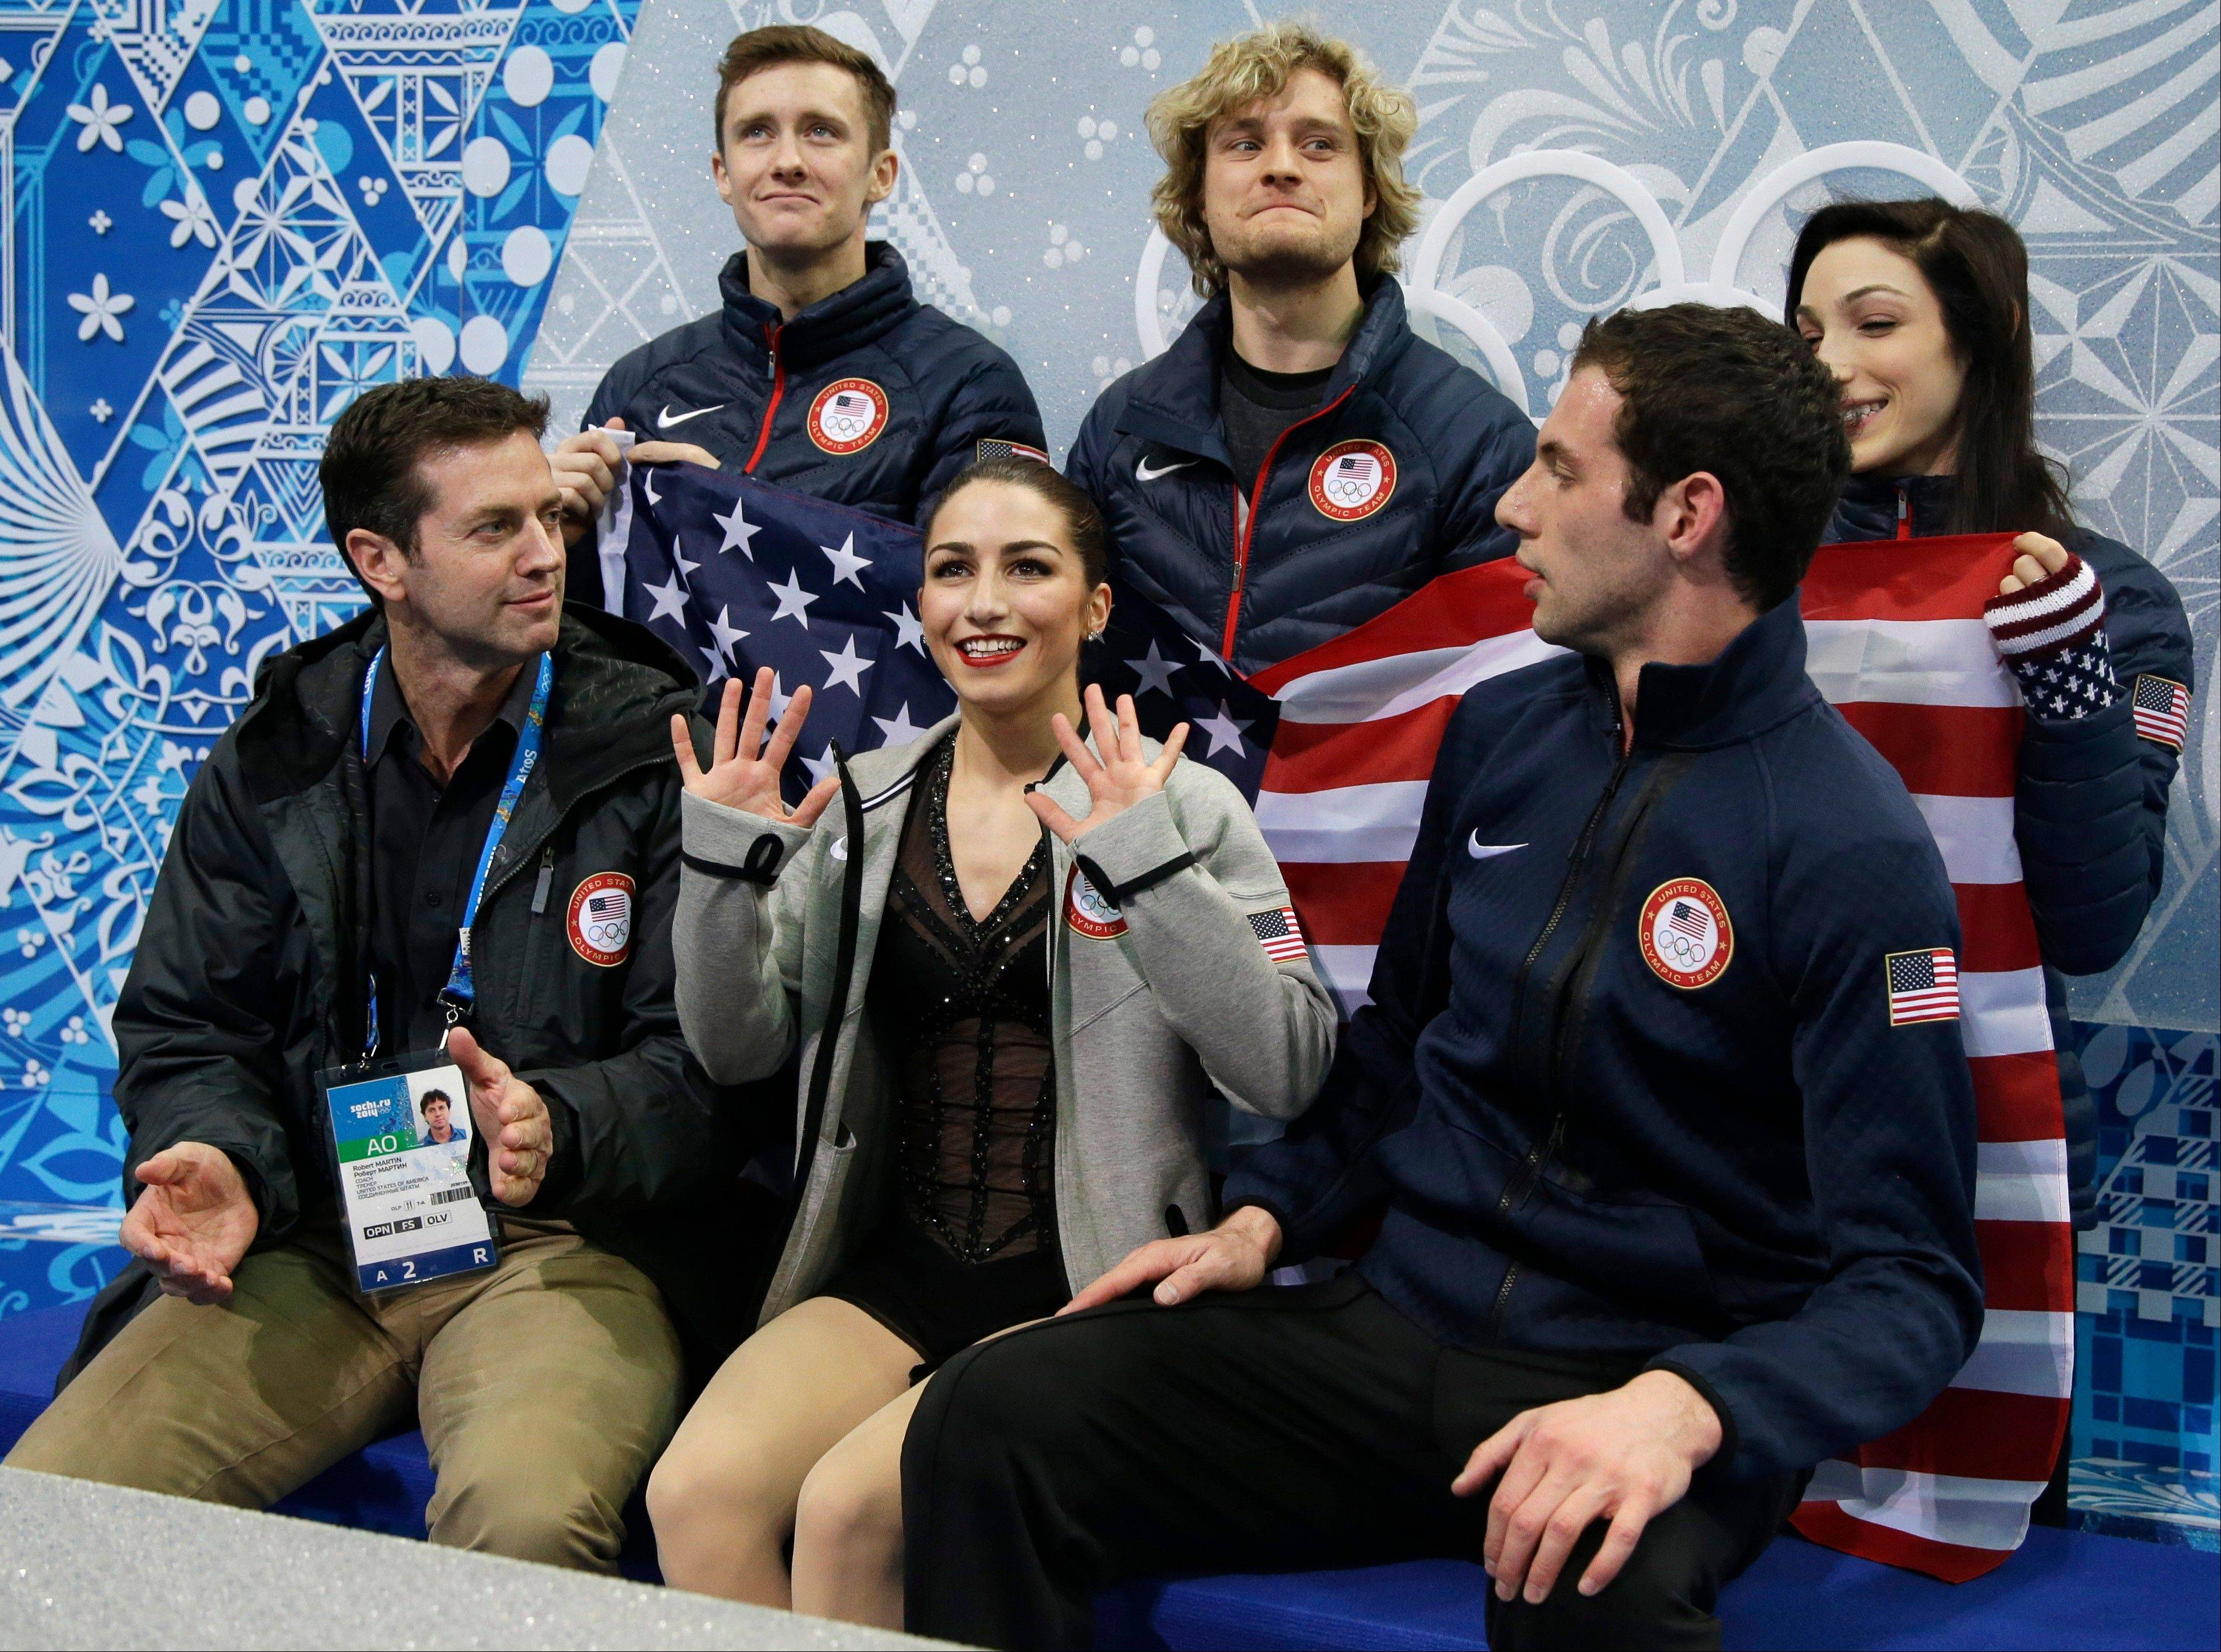 Marissa Castelli, center, and Simon Shnapir, right, wait for their results following the team pairs short program figure skating competition at the Iceberg Skating Palace Thursday during the 2014 Winter Olympics in Sochi, Russia.